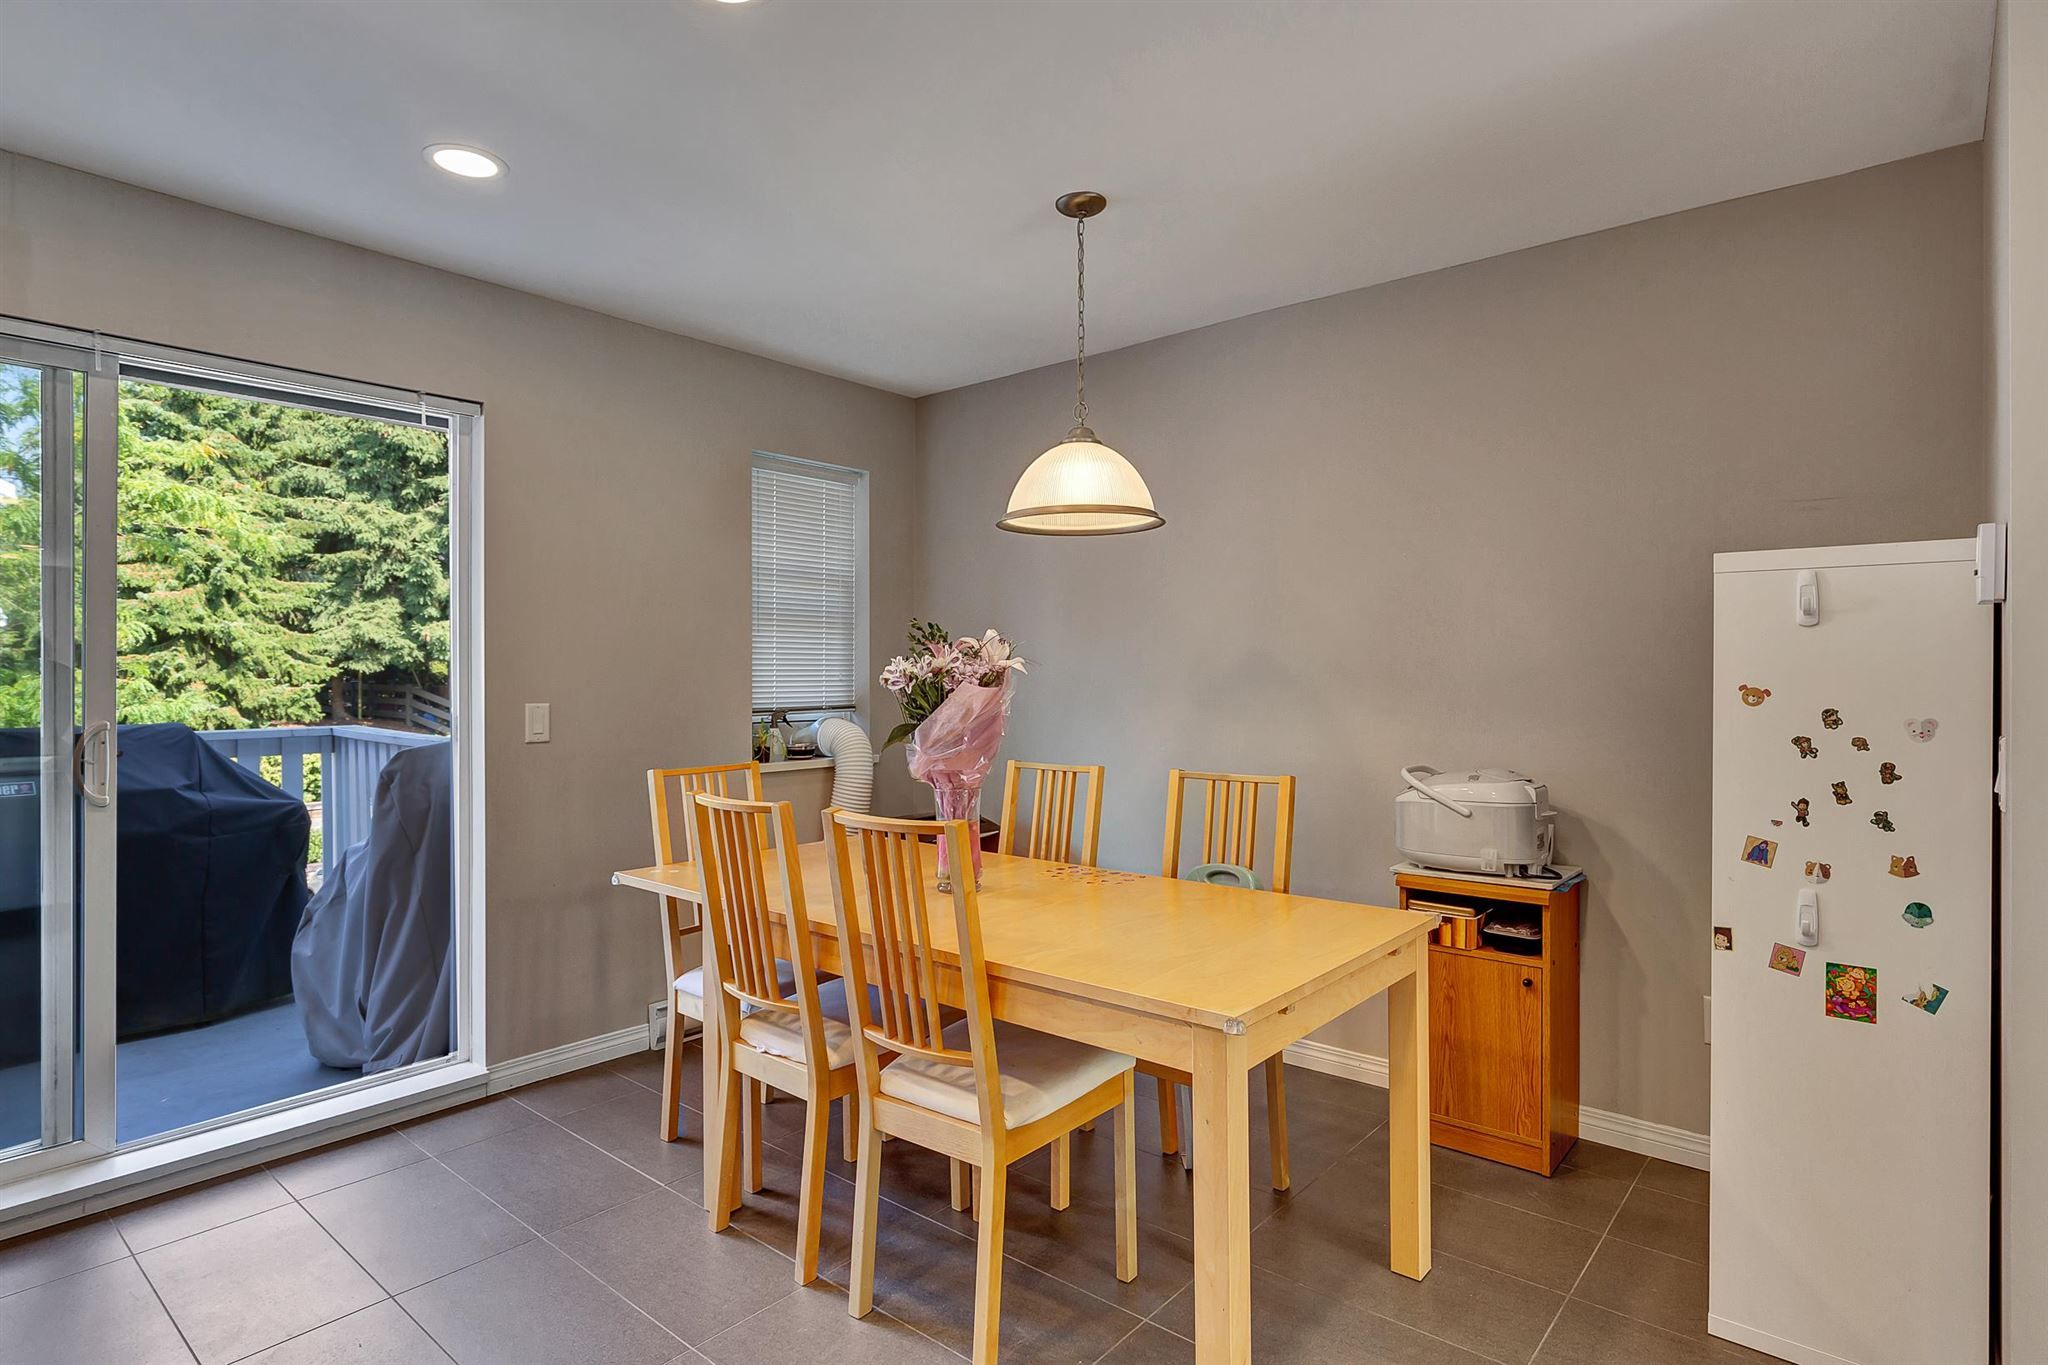 """Photo 17: Photos: 9 15871 85 Avenue in Surrey: Fleetwood Tynehead Townhouse for sale in """"Huckleberry"""" : MLS®# R2606668"""